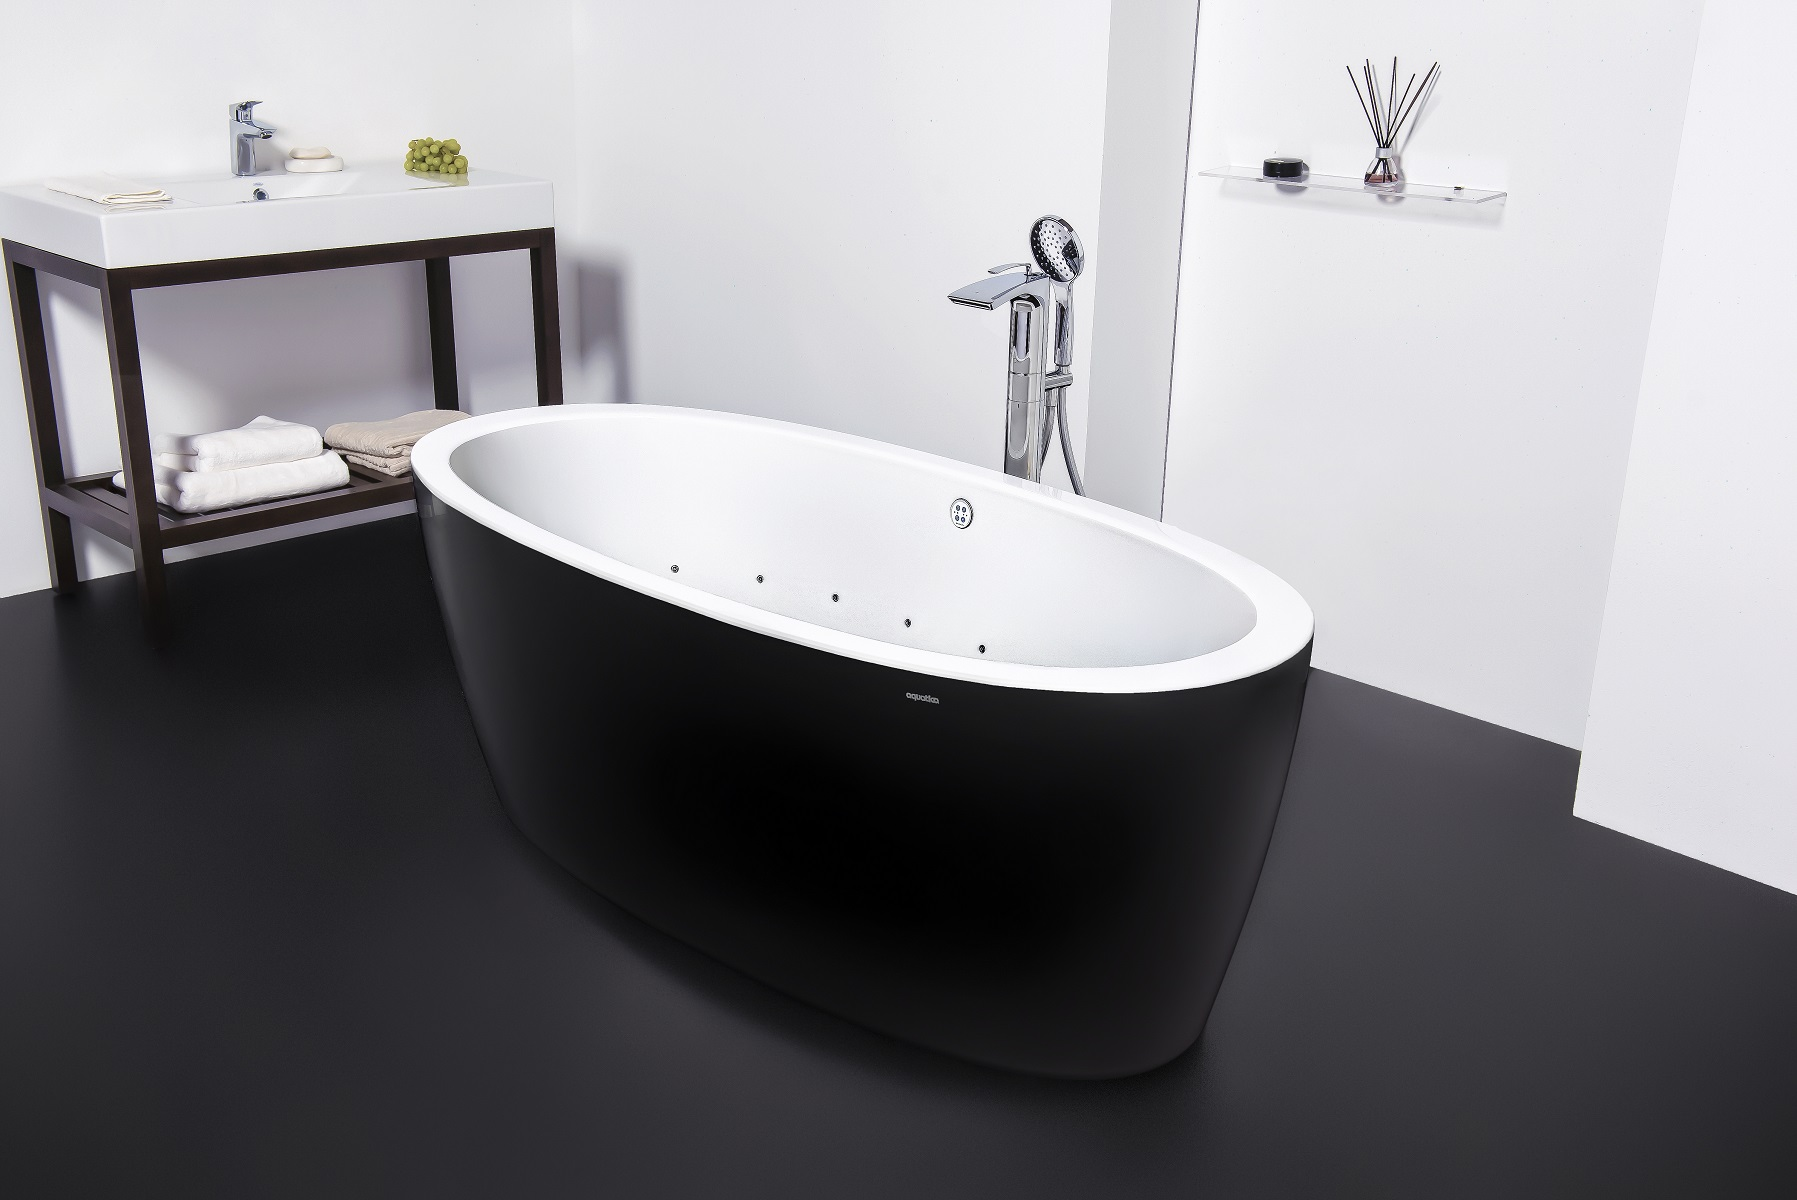 Purescape 174A Blck Wht Relax Air Massage Bathtub by Aquatica DSC2814 web